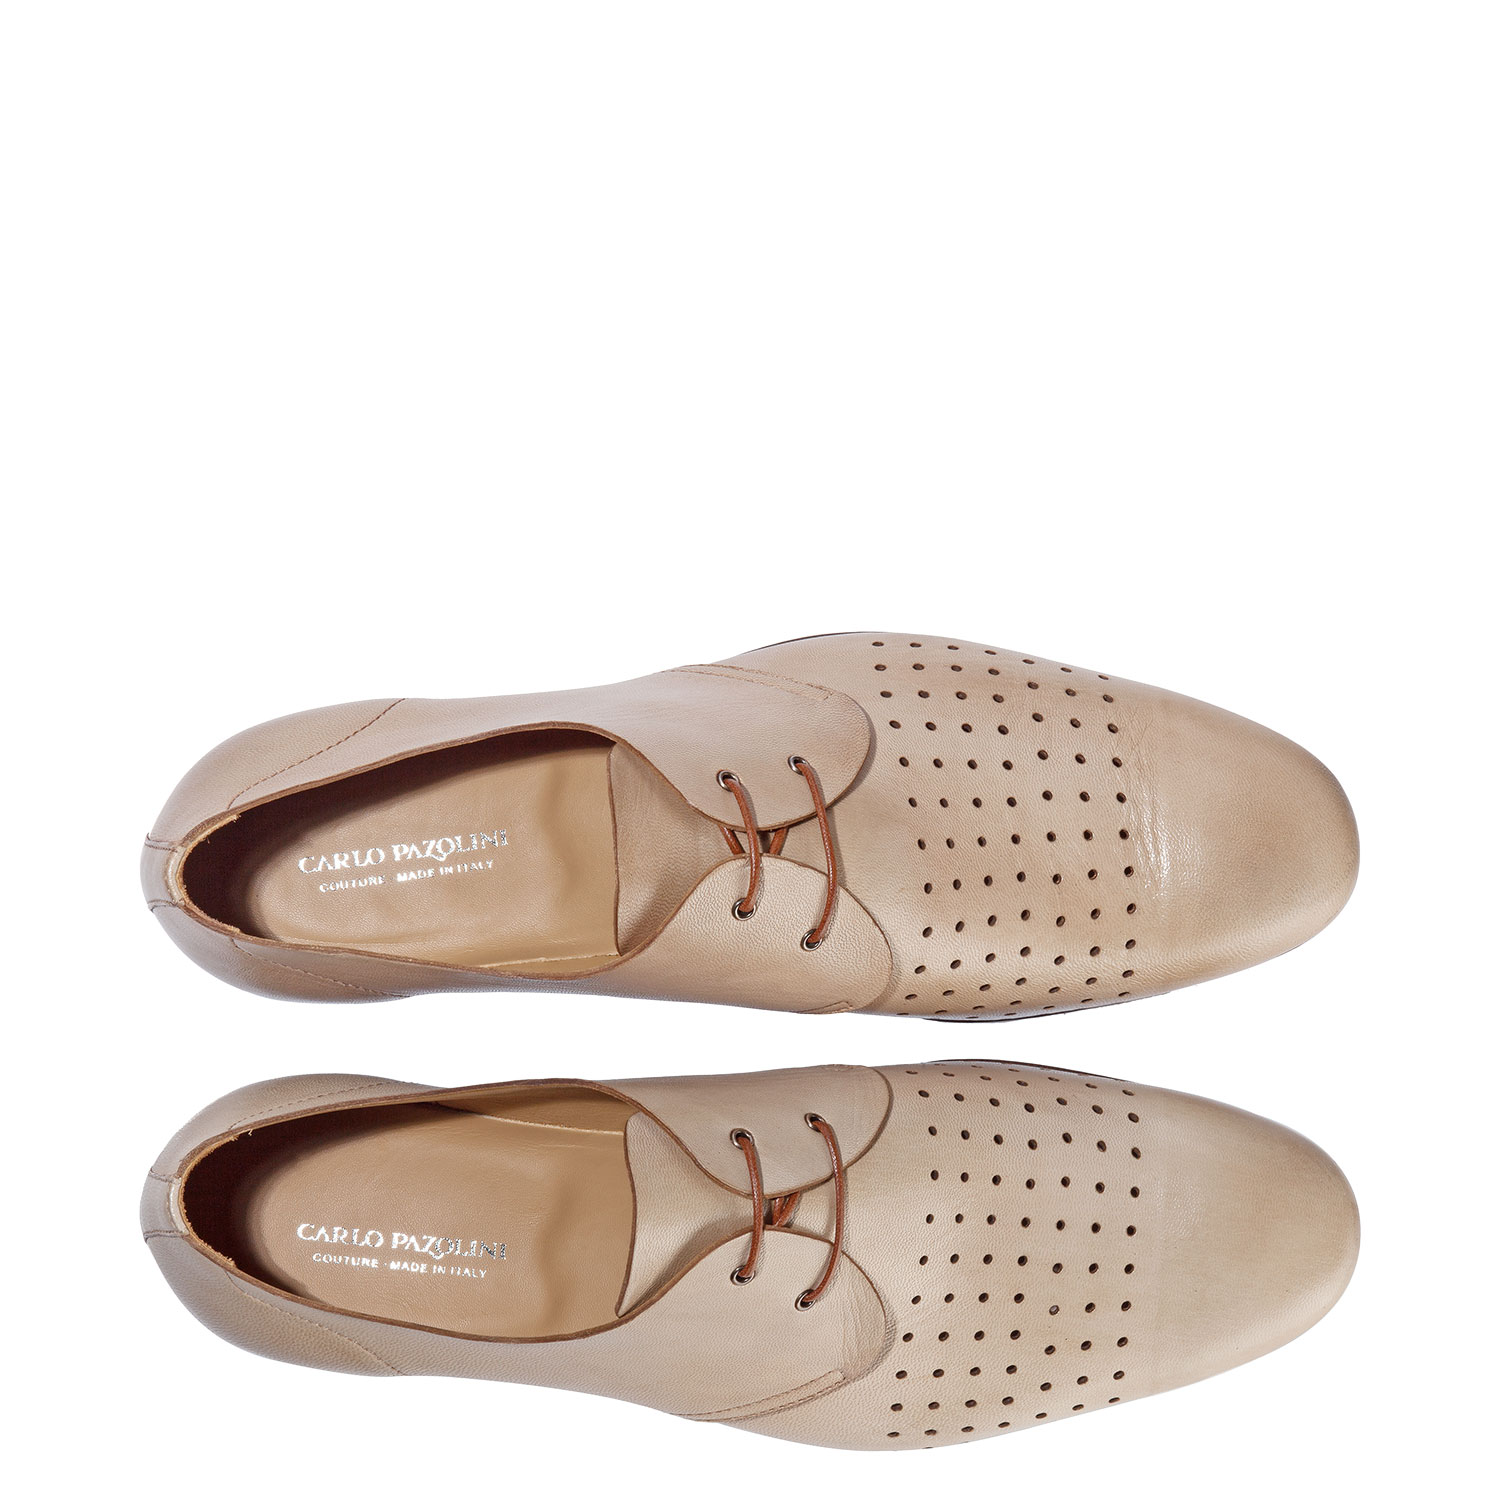 Men's shoes CARLO PAZOLINI GD-BOT12-3